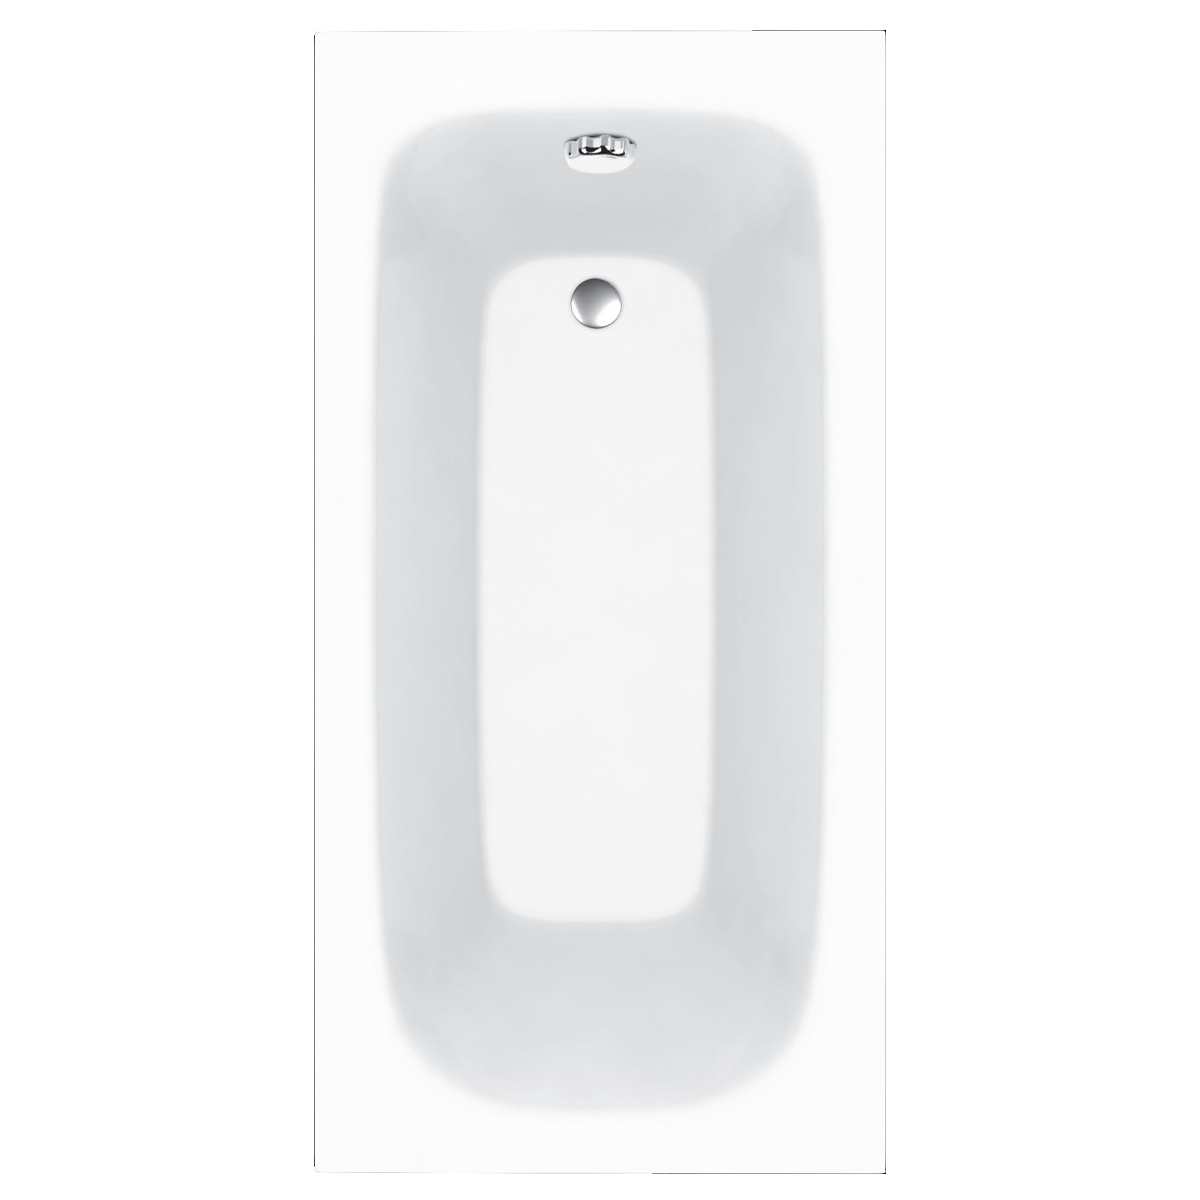 K-Vit G4K 1600 x 700 Contract Bath